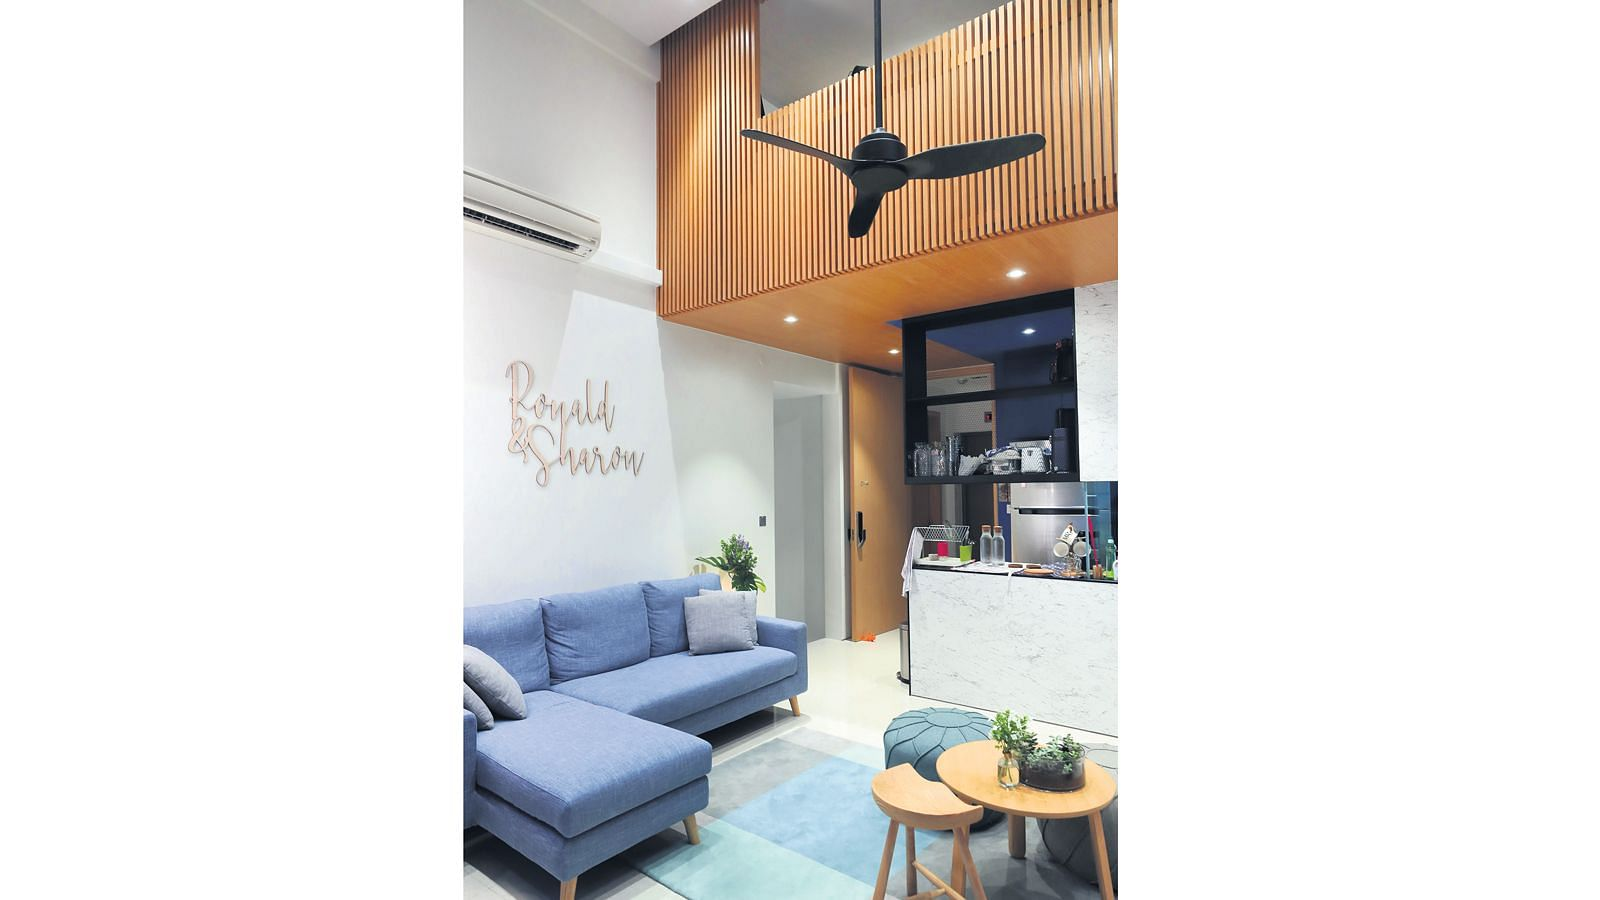 House Tour High Ceilings And Ideal Location Make This Loft Apartment The Perfect Home Home Decor Singapore